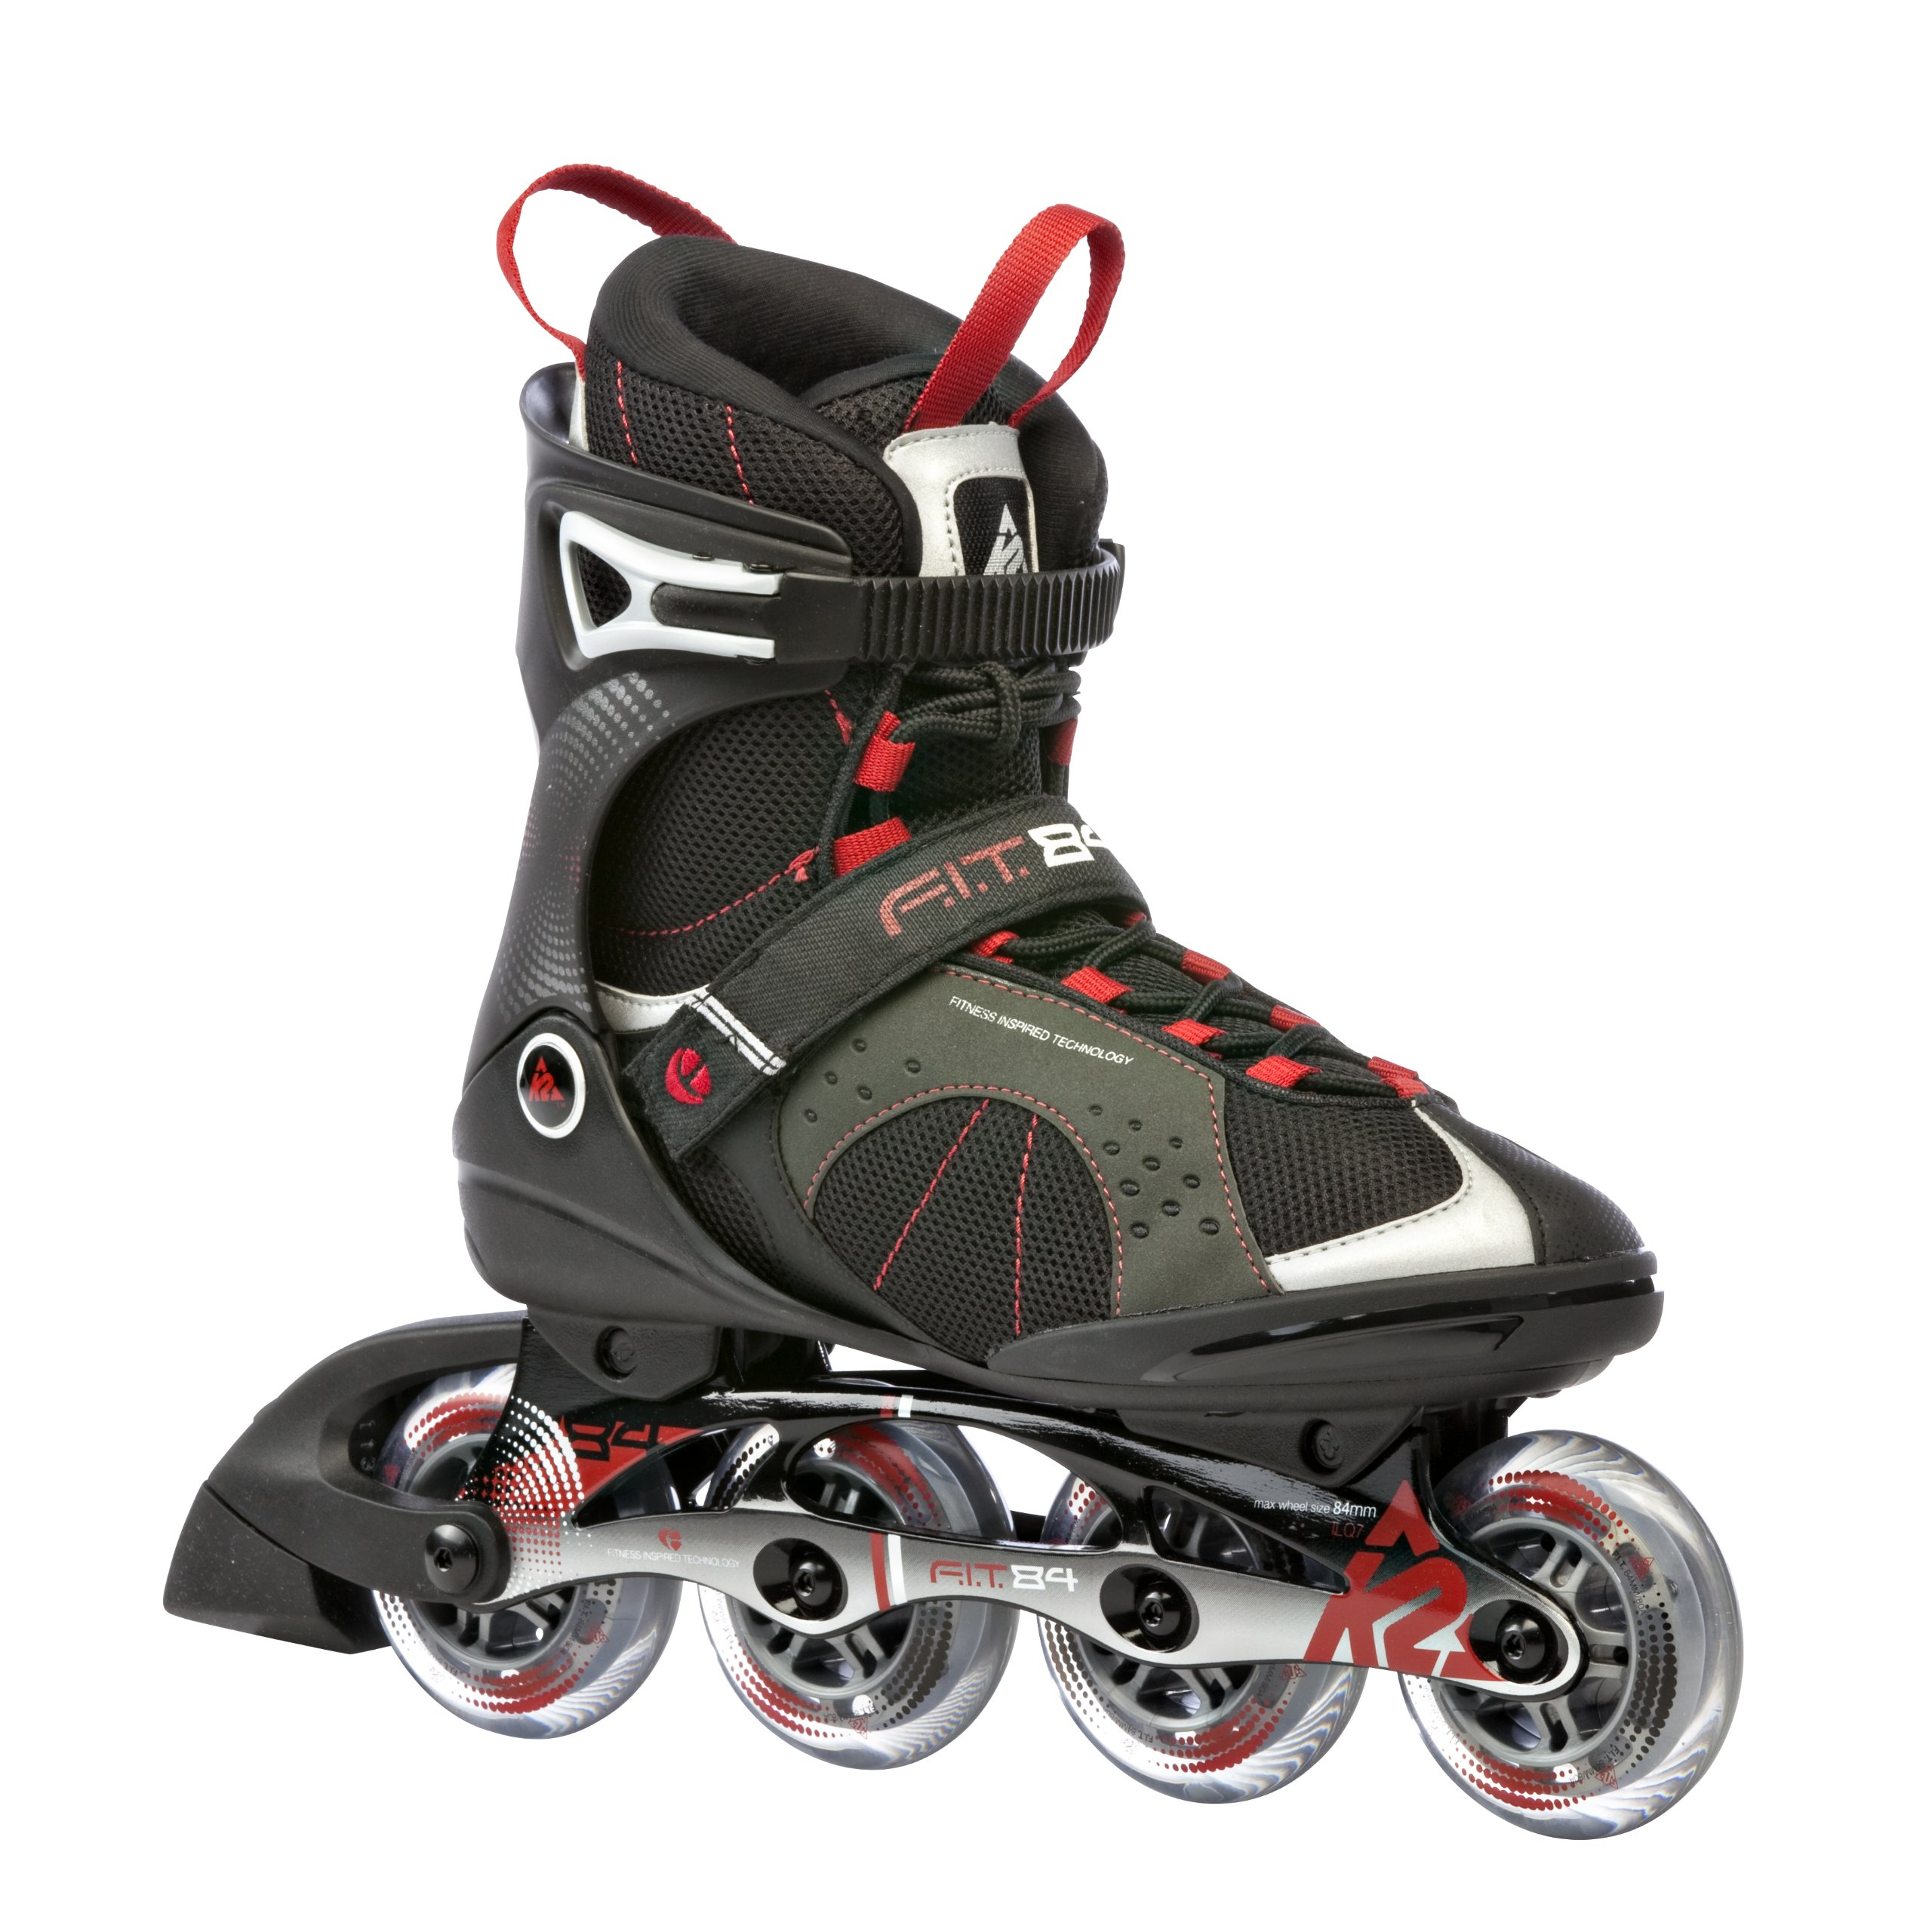 K2 Sports Men's F.I.T. 84 Fitness 2012 Inline Skates (Black/Red, 9) by K2